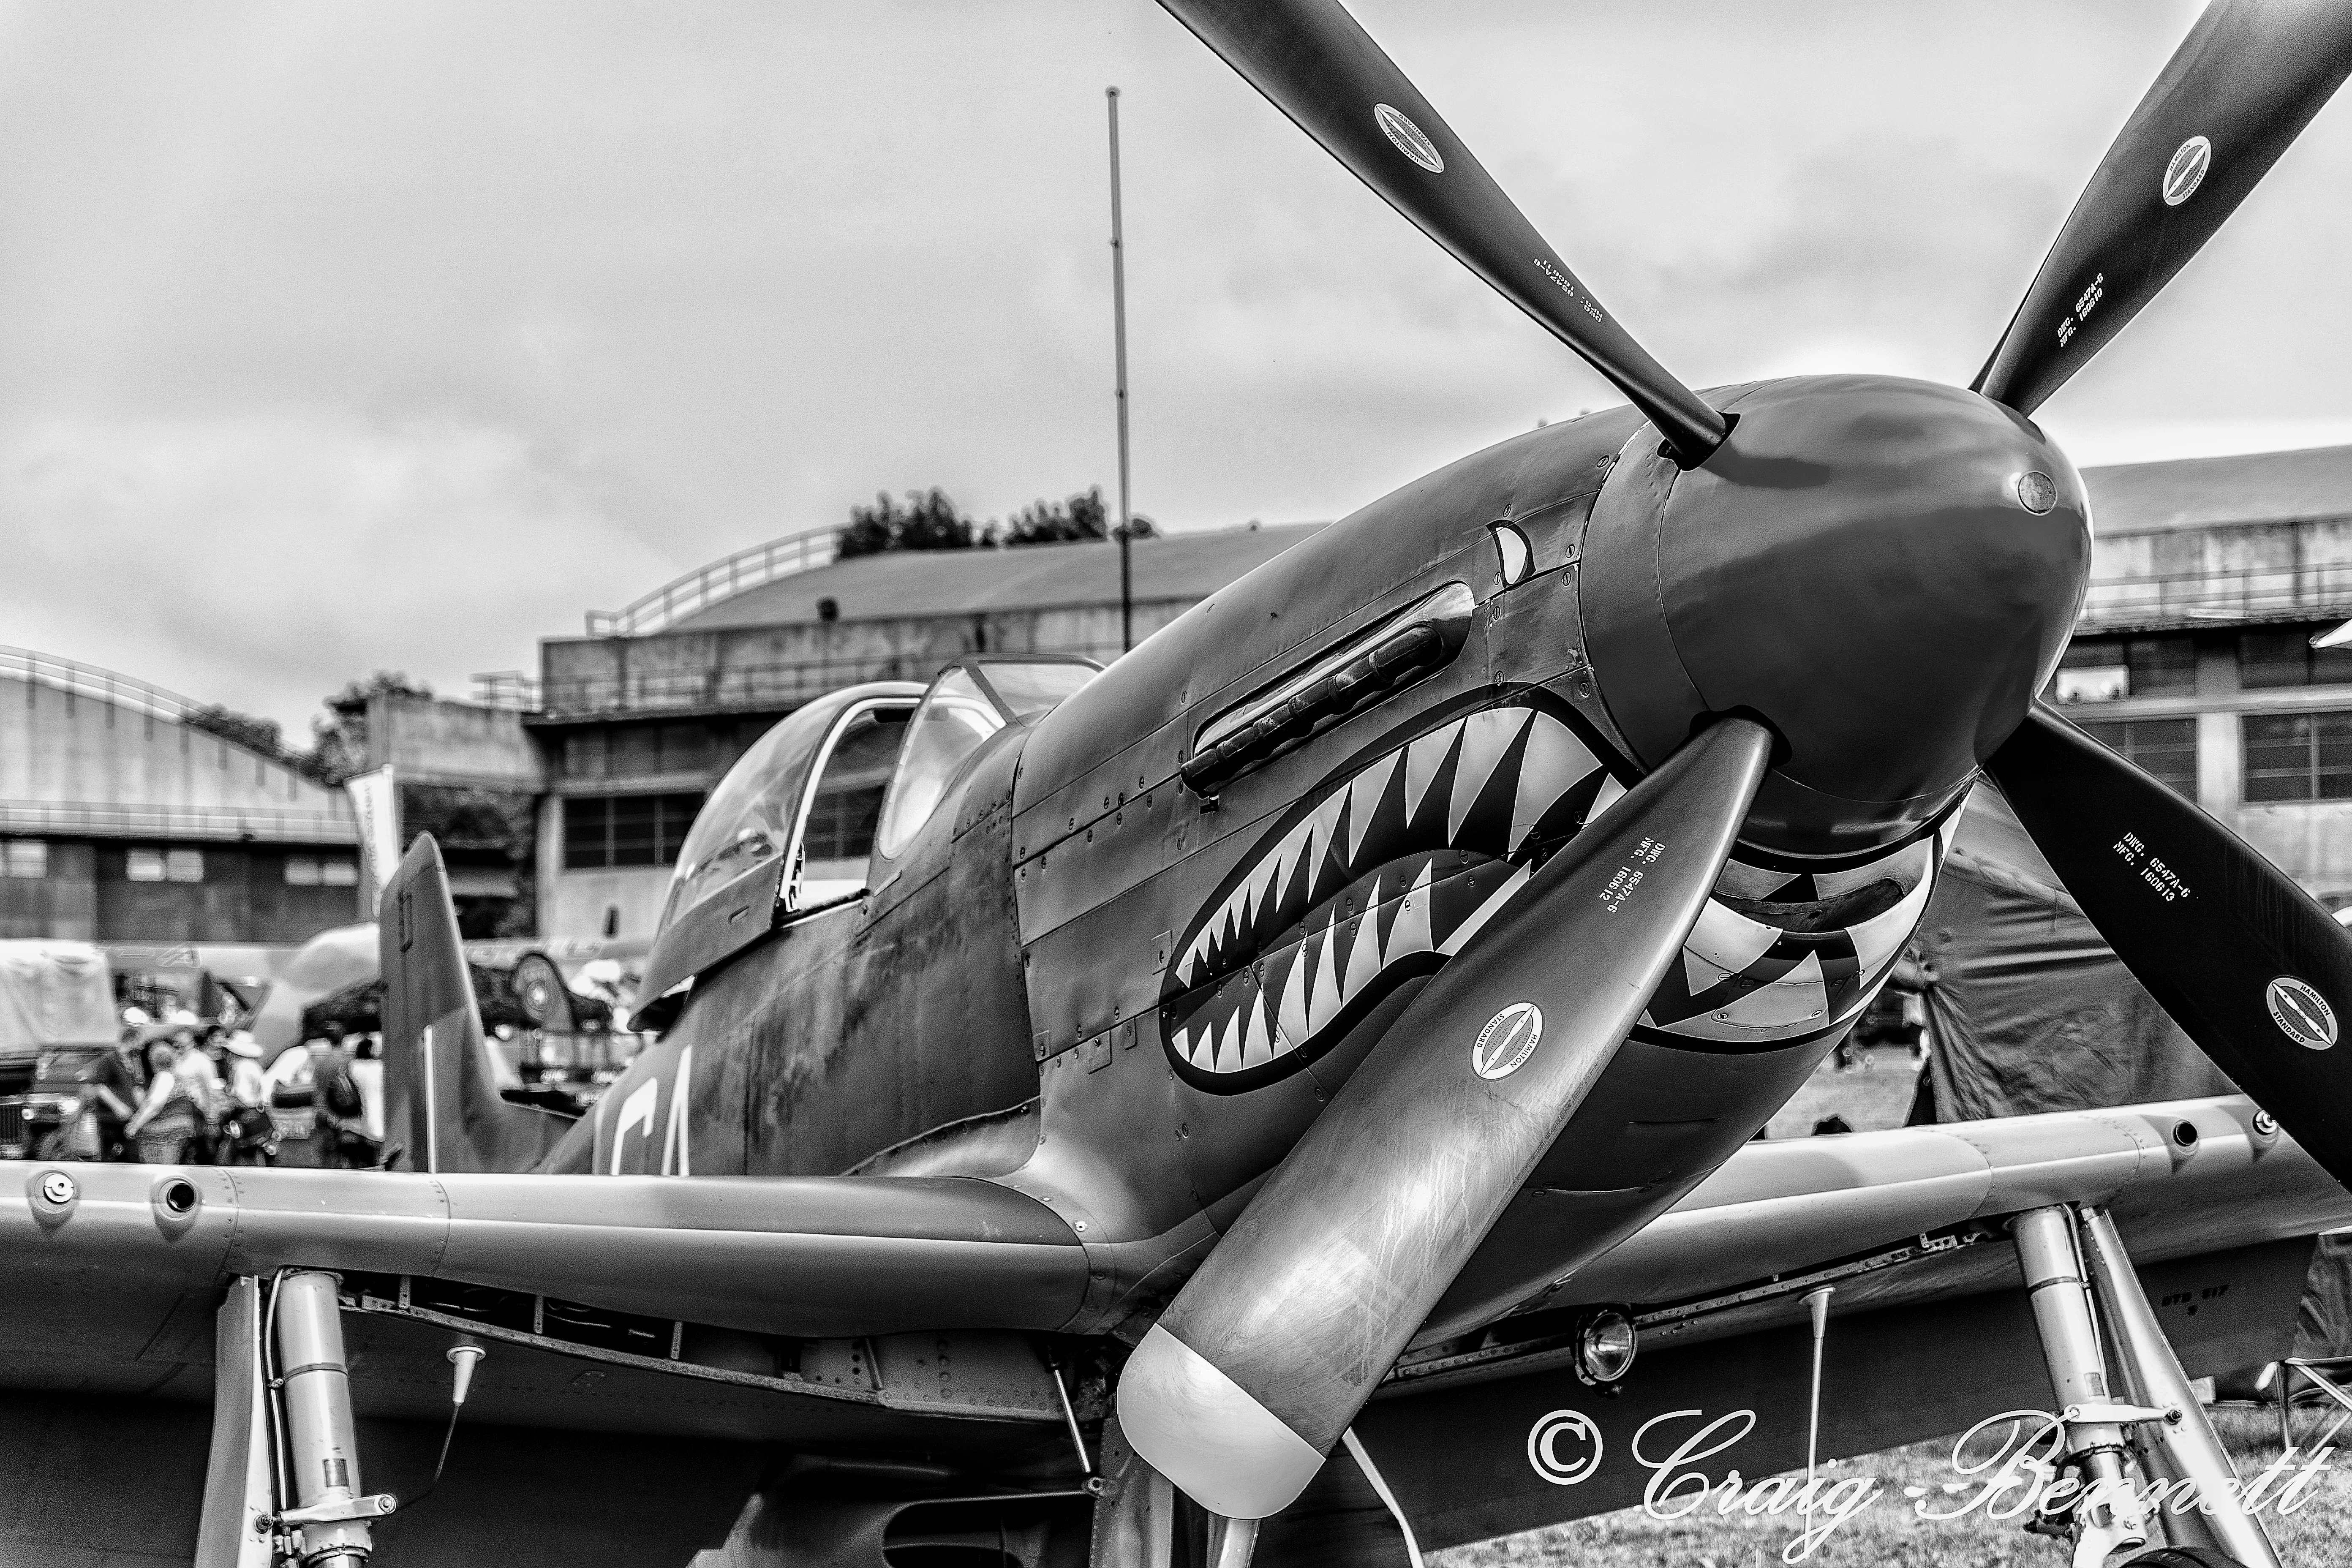 Mustang at the Cosford airshow 2018